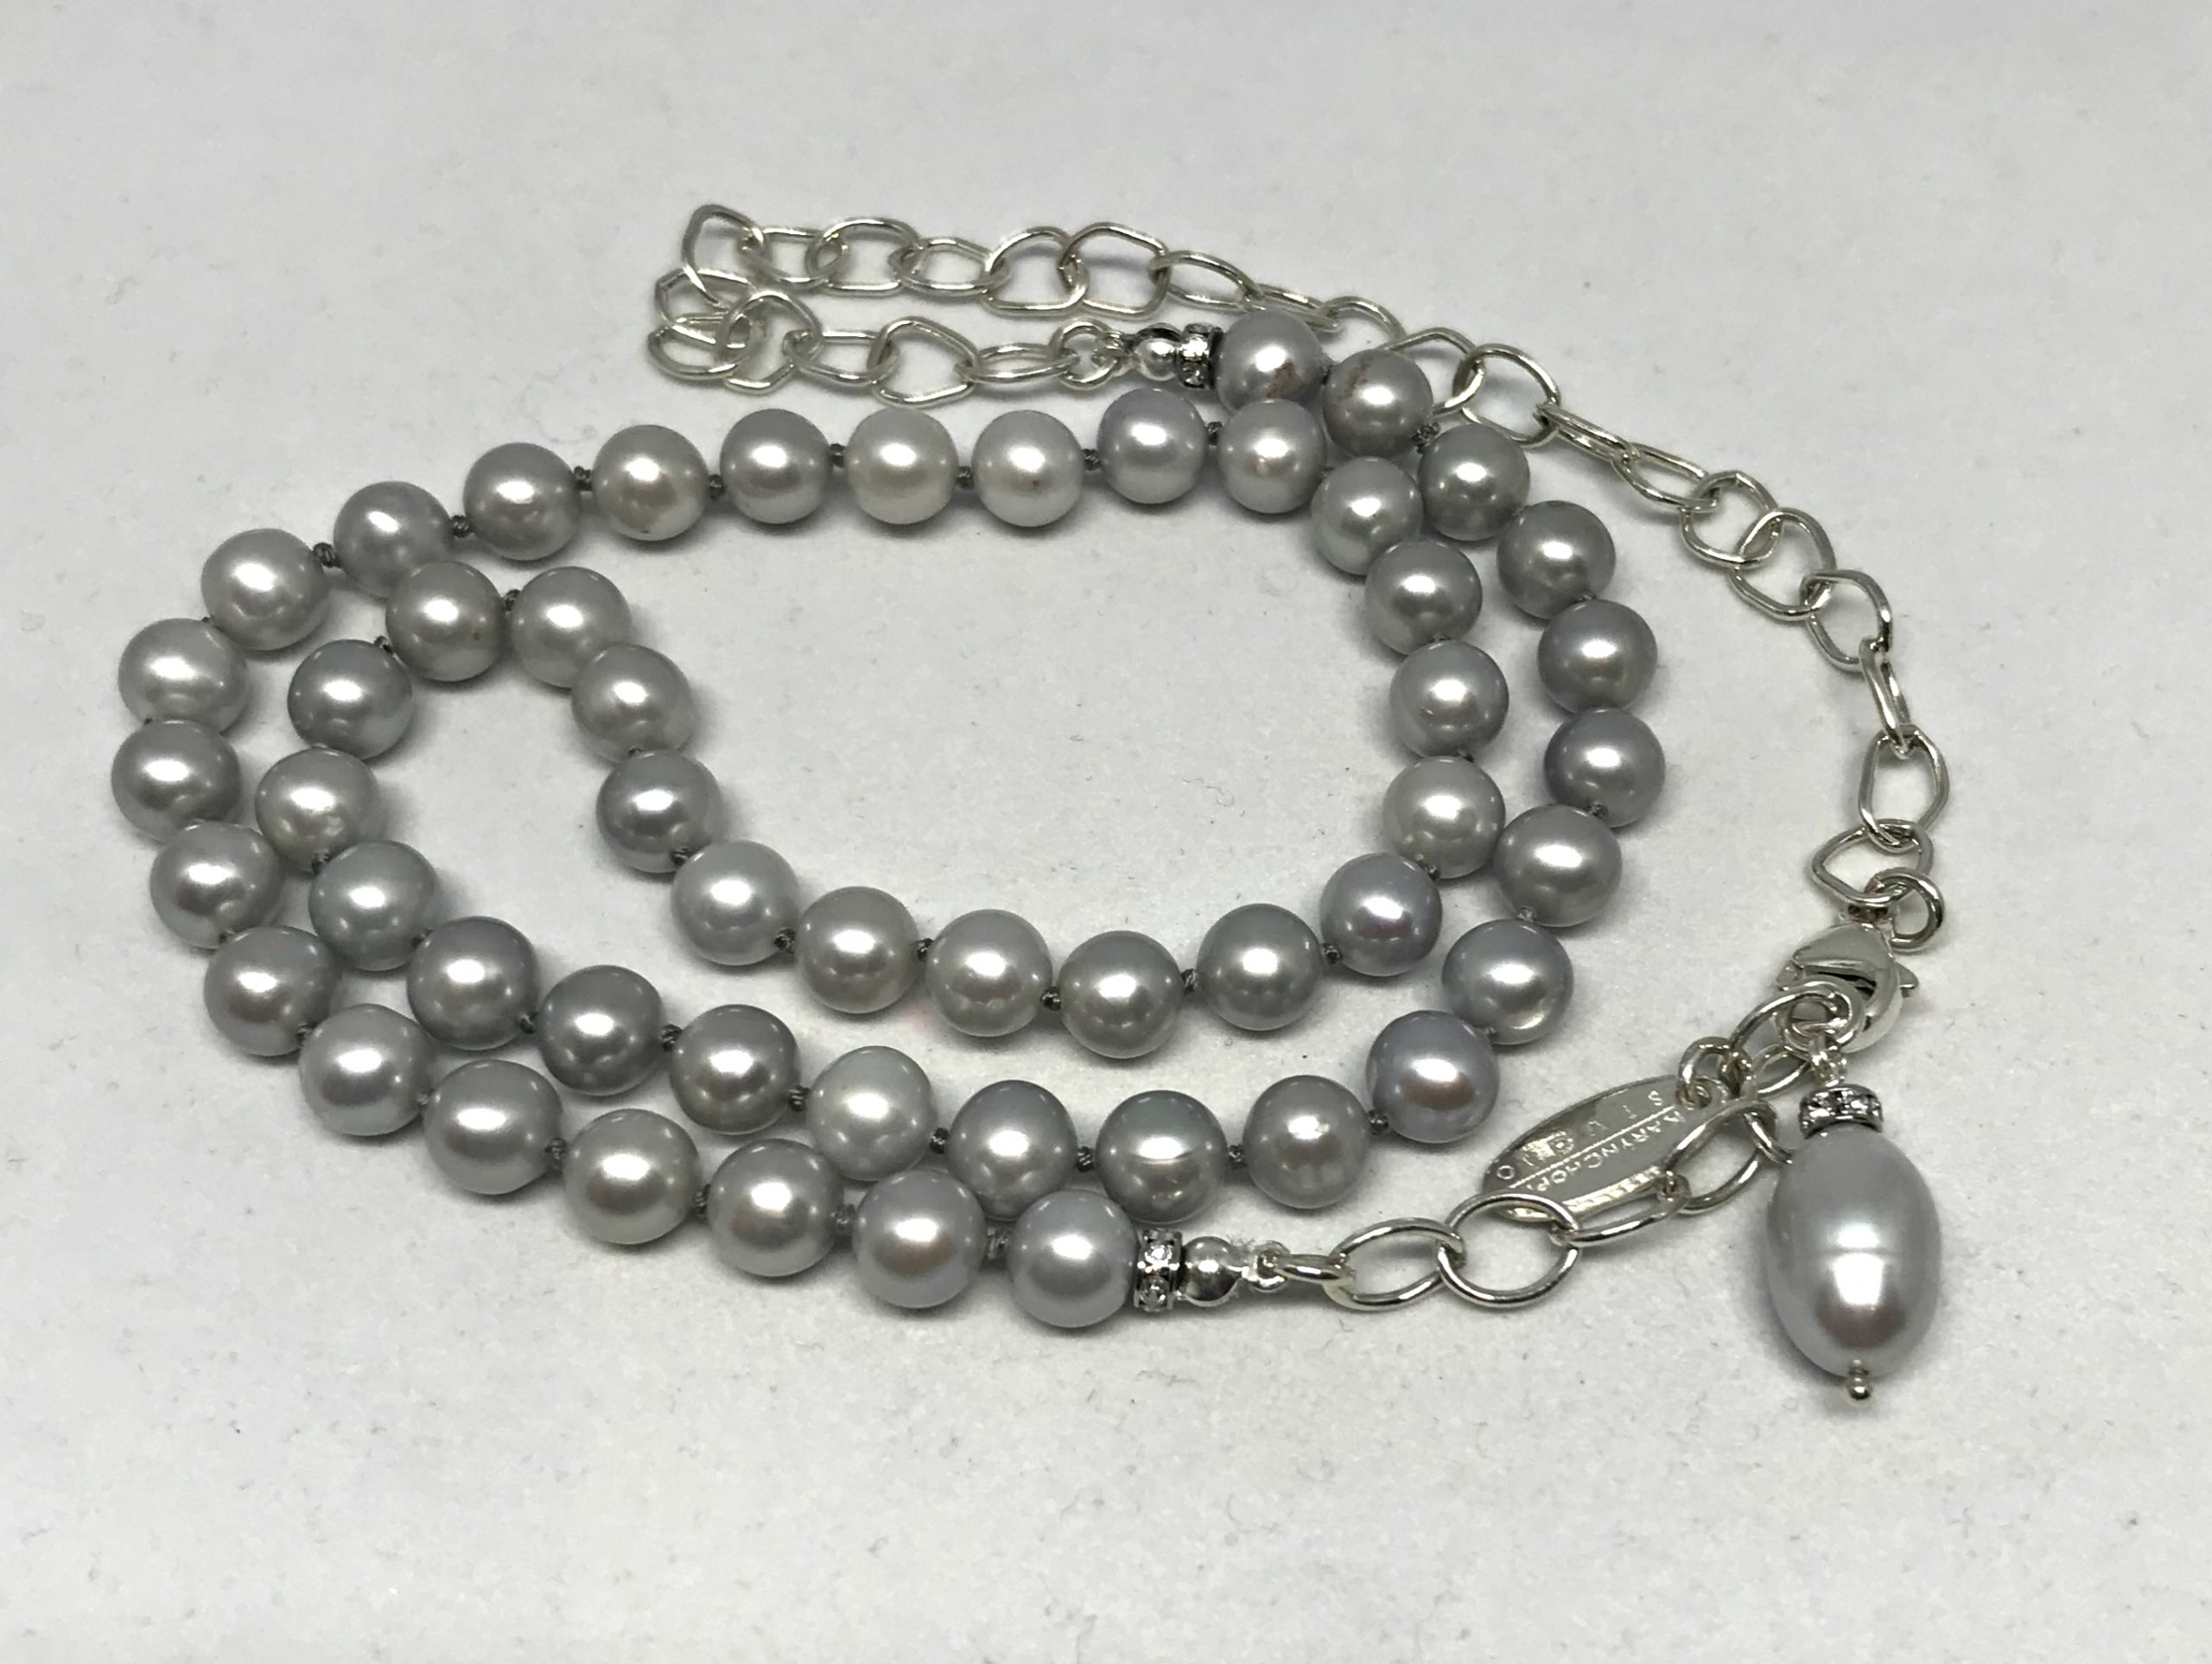 Gentle Soul Pearl Necklace by Karyn Chopik | Effusion Art Gallery + Cast Glass Studio, Invermere BC